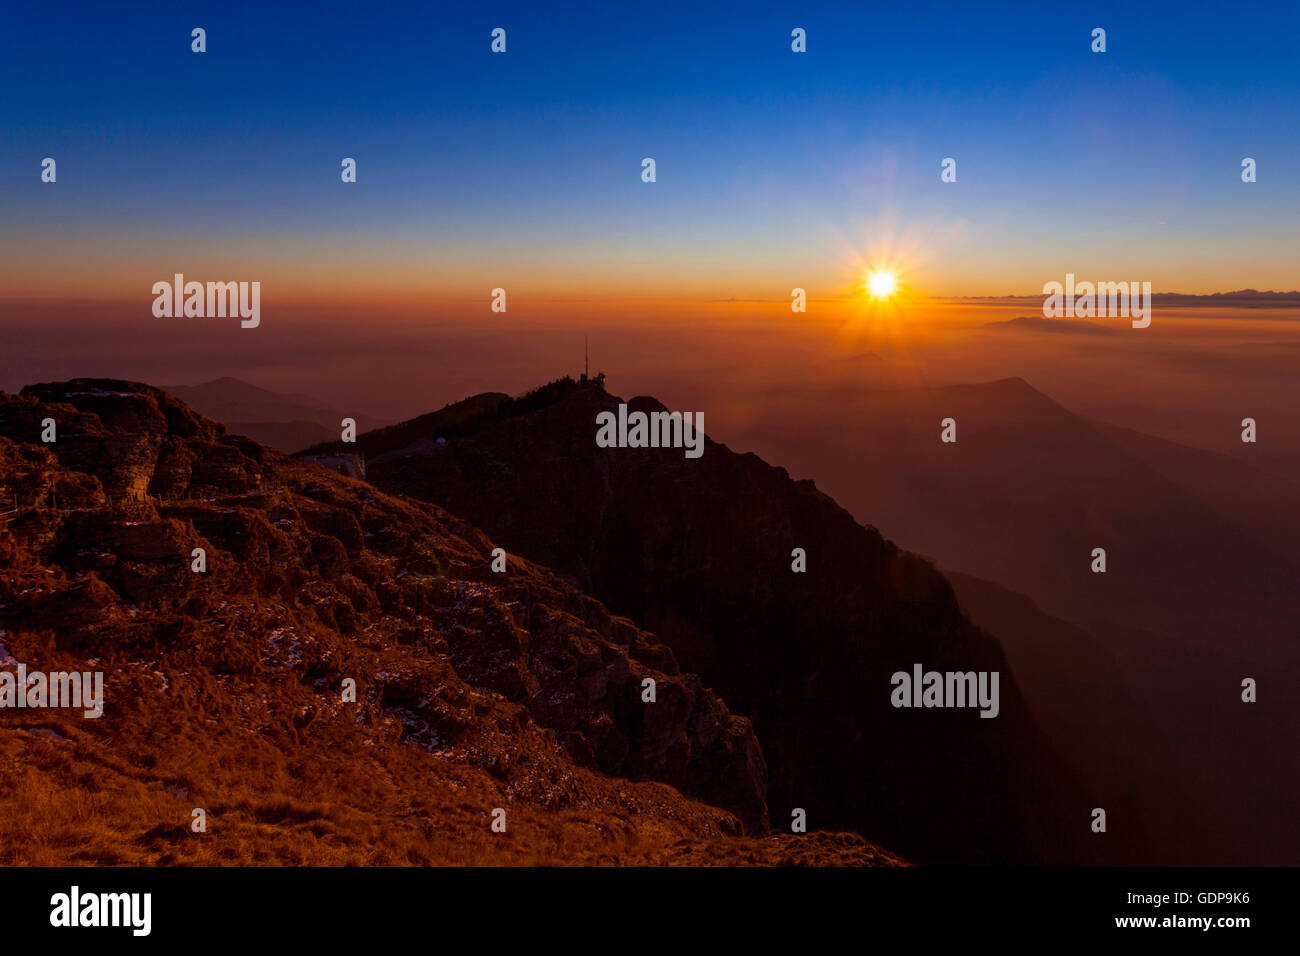 Elevated silhouetted landscape with valley mist at sunset, Monte Generoso,Ticino, Switzerland - Stock Image